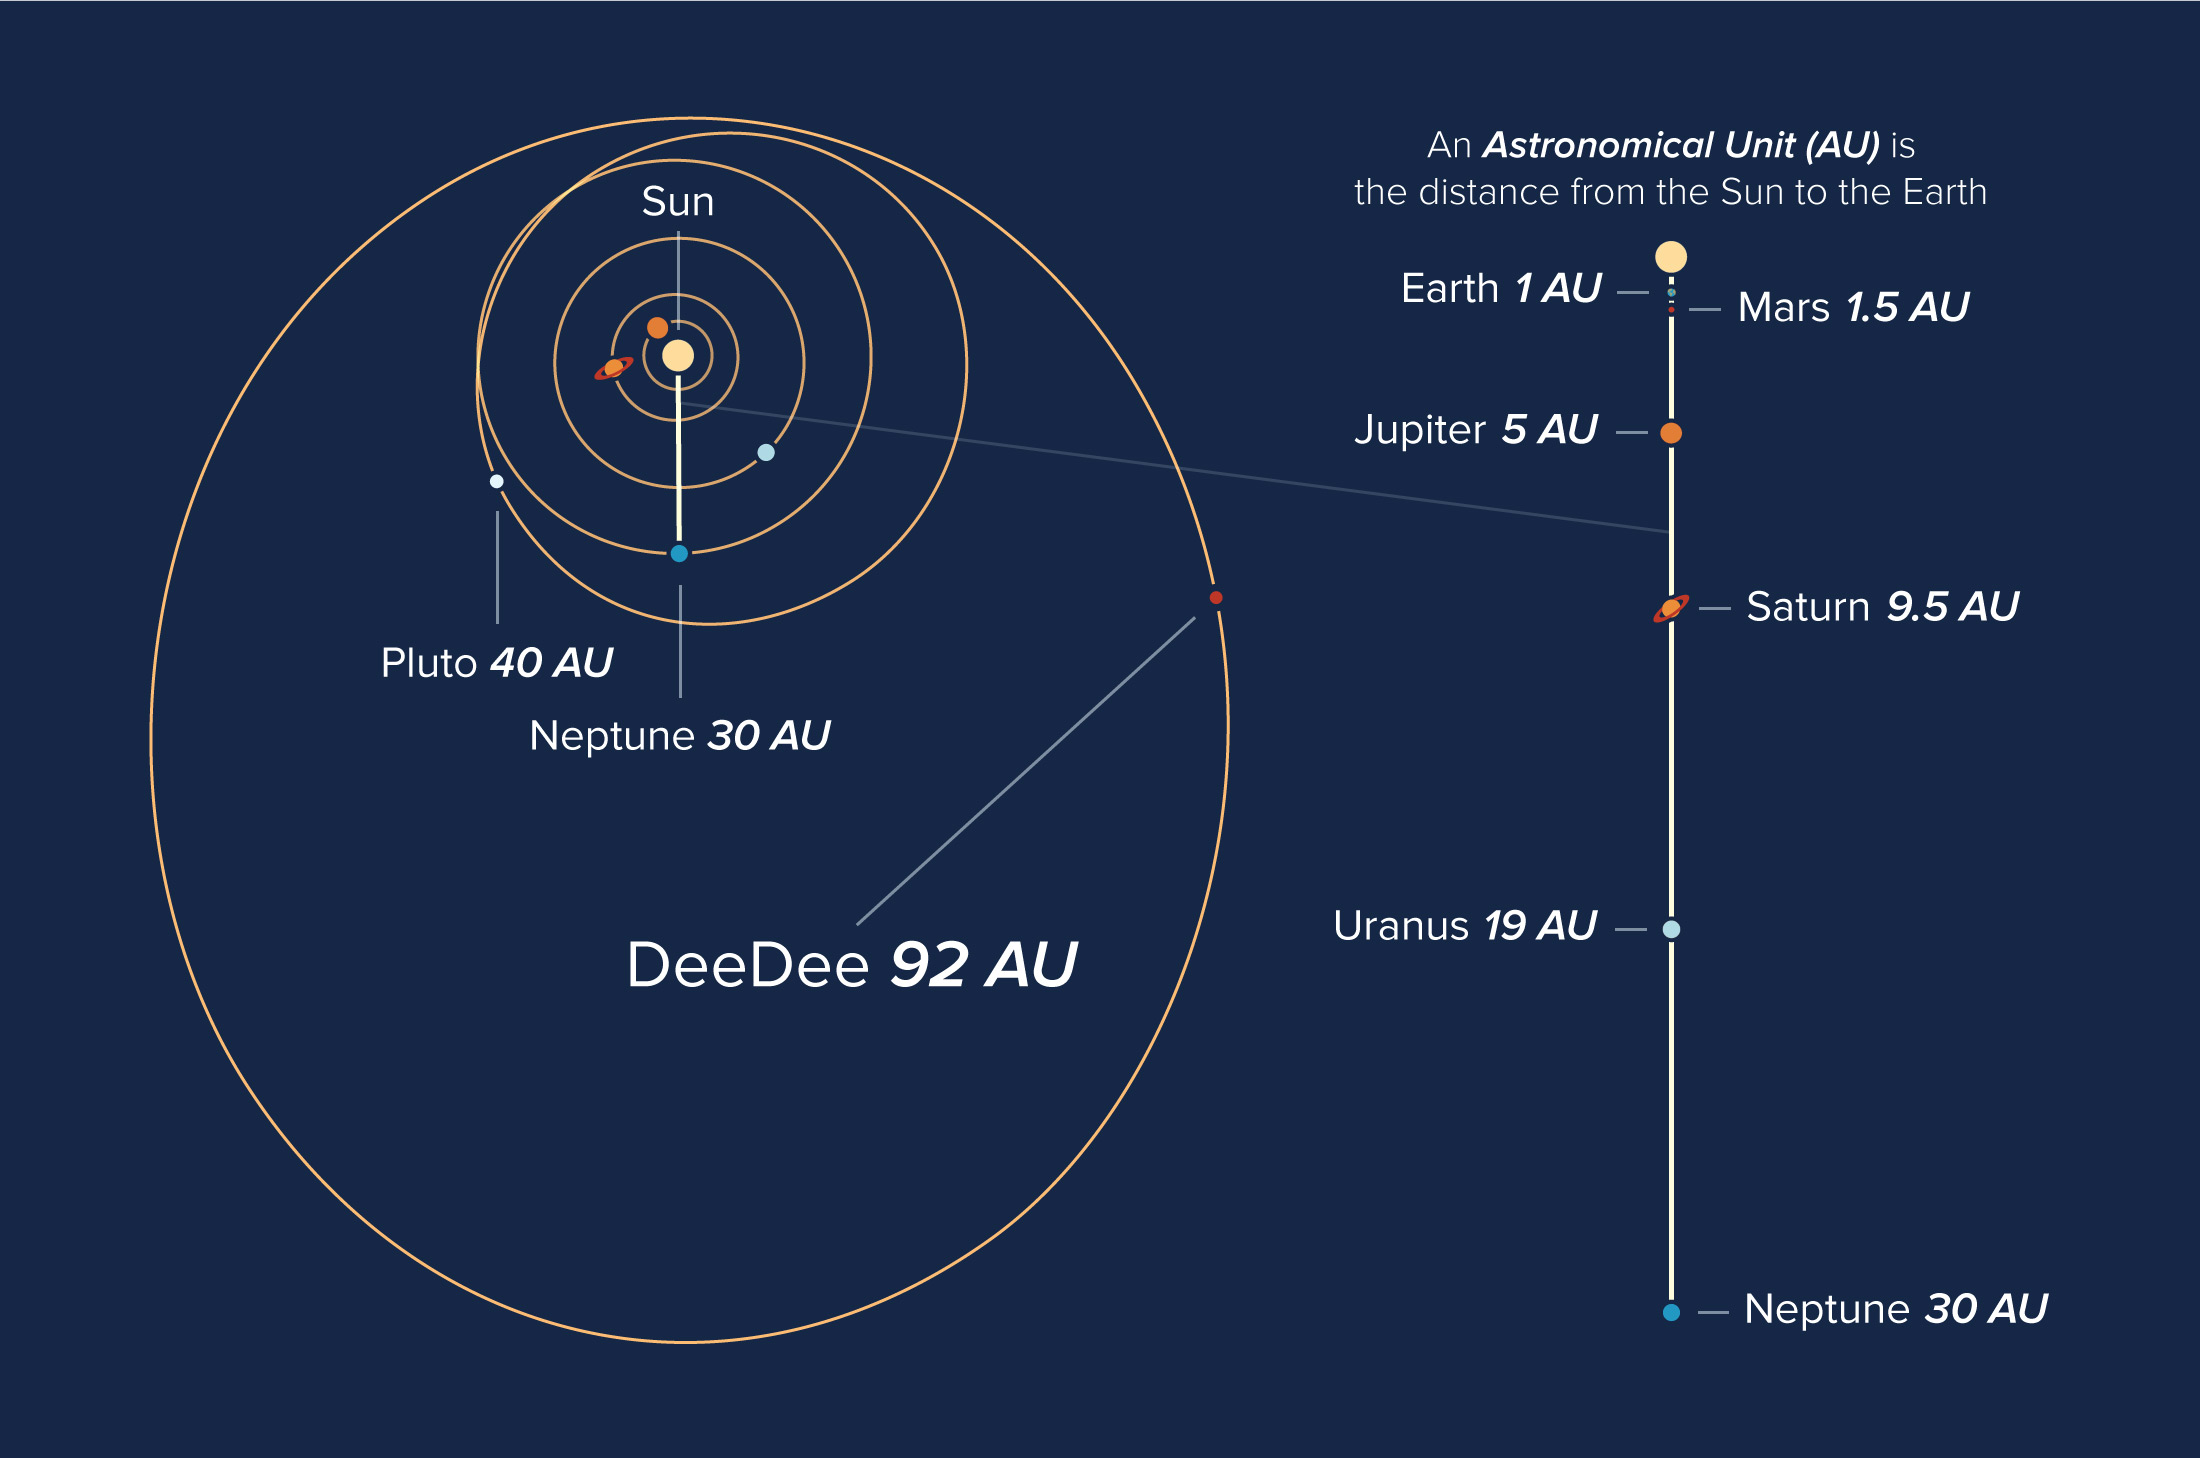 Meet DeeDee, the Solar System's Newest Dwarf Planet (Maybe)